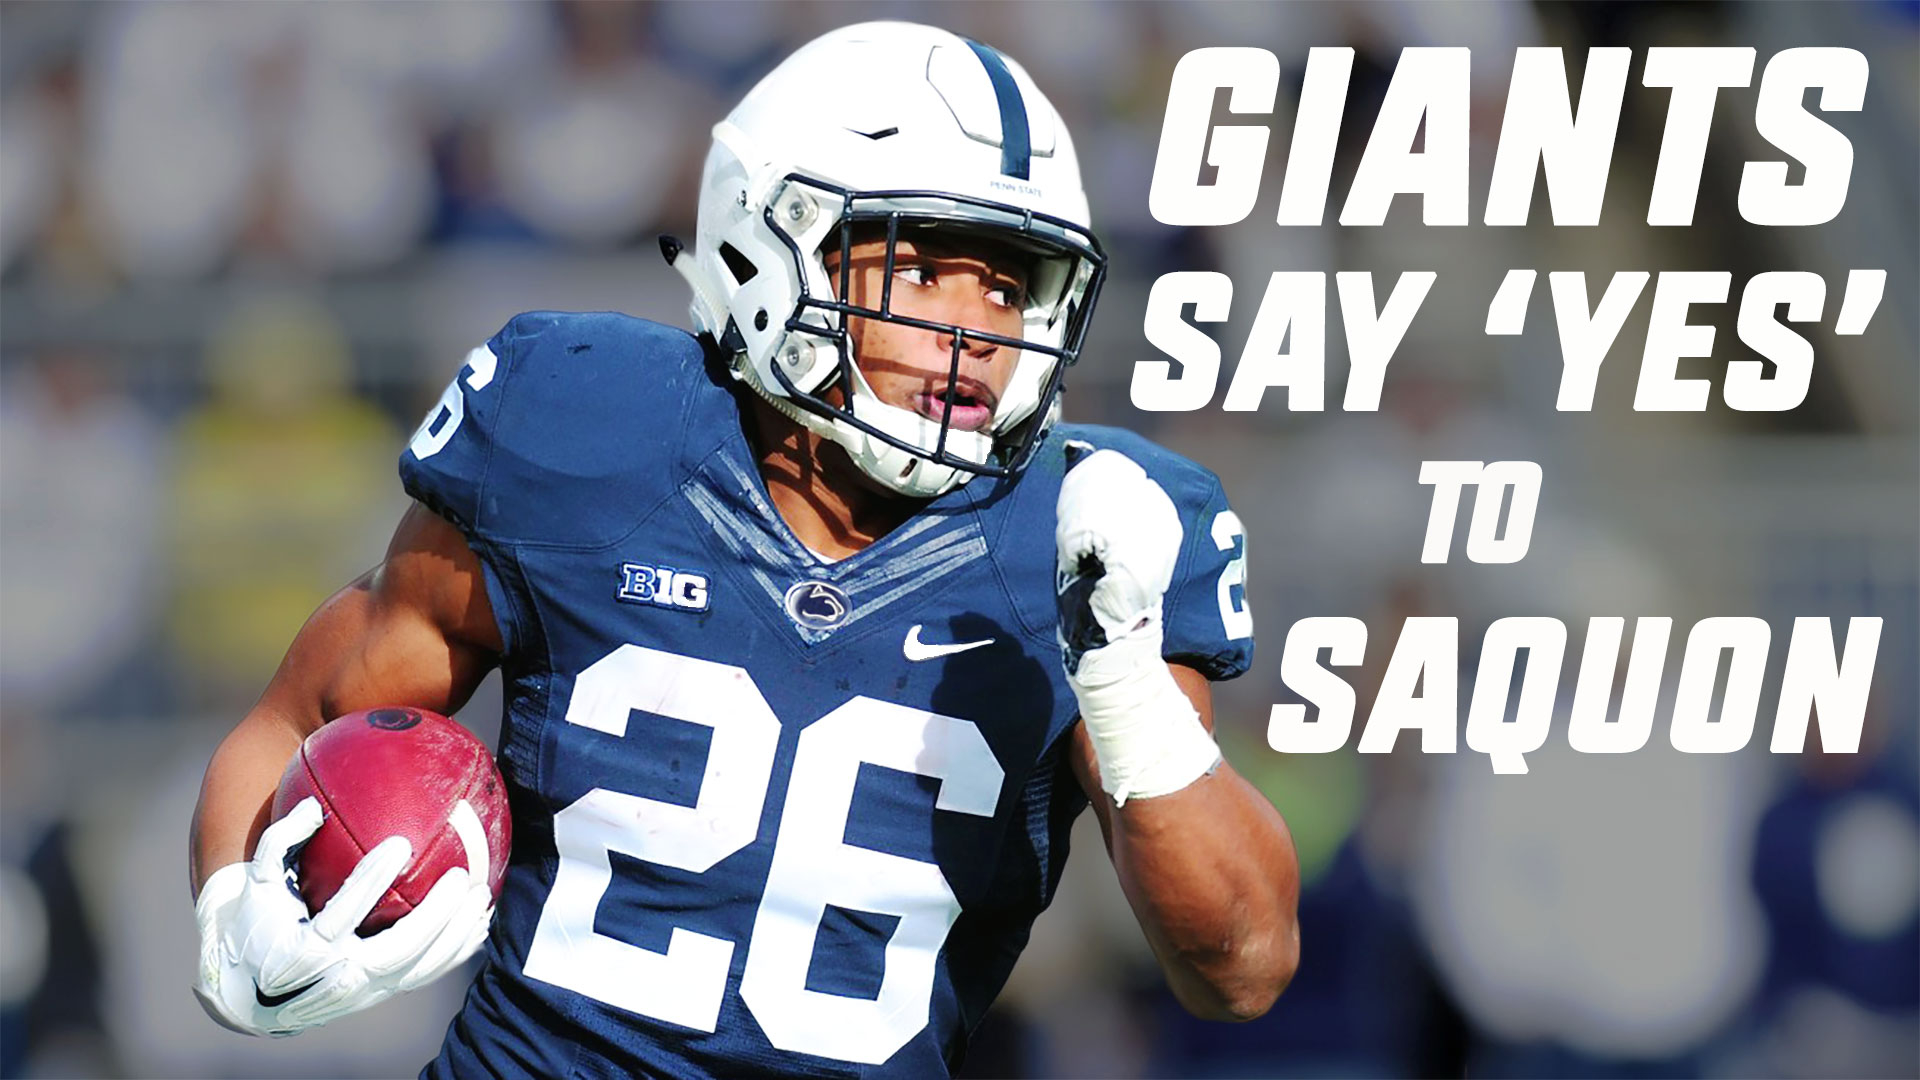 Saquon-Barkley-penn-state-nittany-lions-giants-draft-pickNeal - Johns HopkinsPenn State Nittany Lions running back Saquon Barkley was selected second overall in the 2018 NFL Draft by the New York Giants